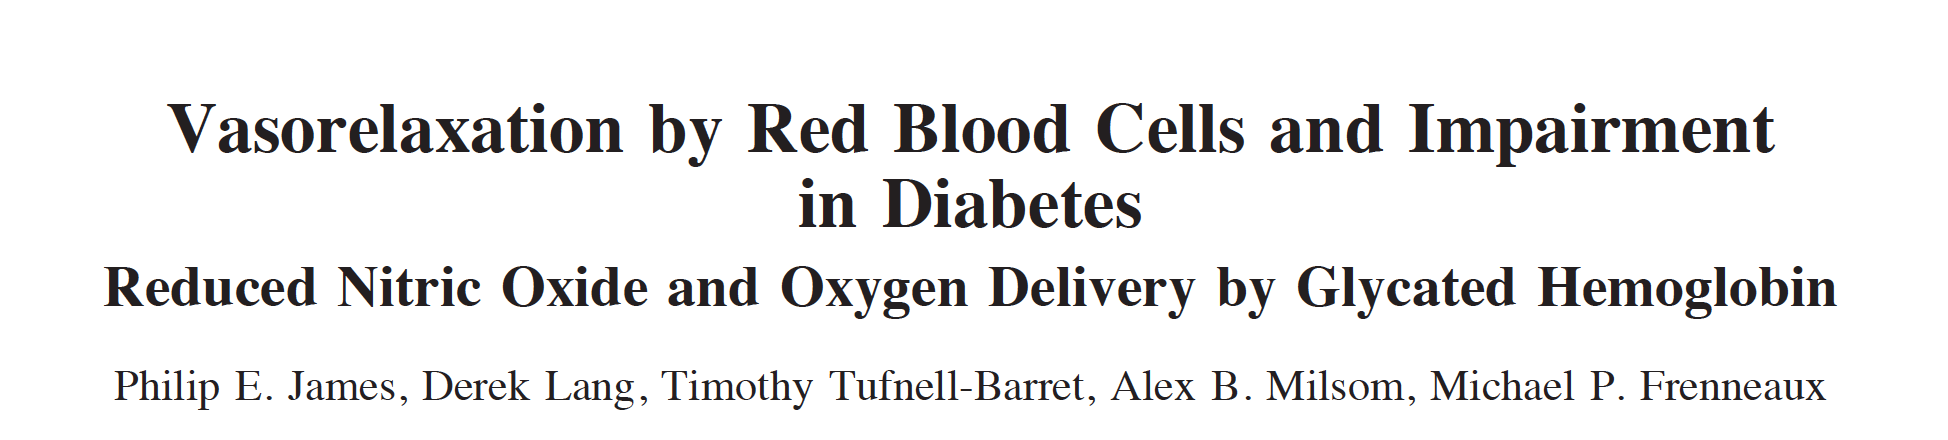 - High HbA1c in diabetics negatively impacts blood flow regulation and tissue oxygenation mechanisms of nitric oxide